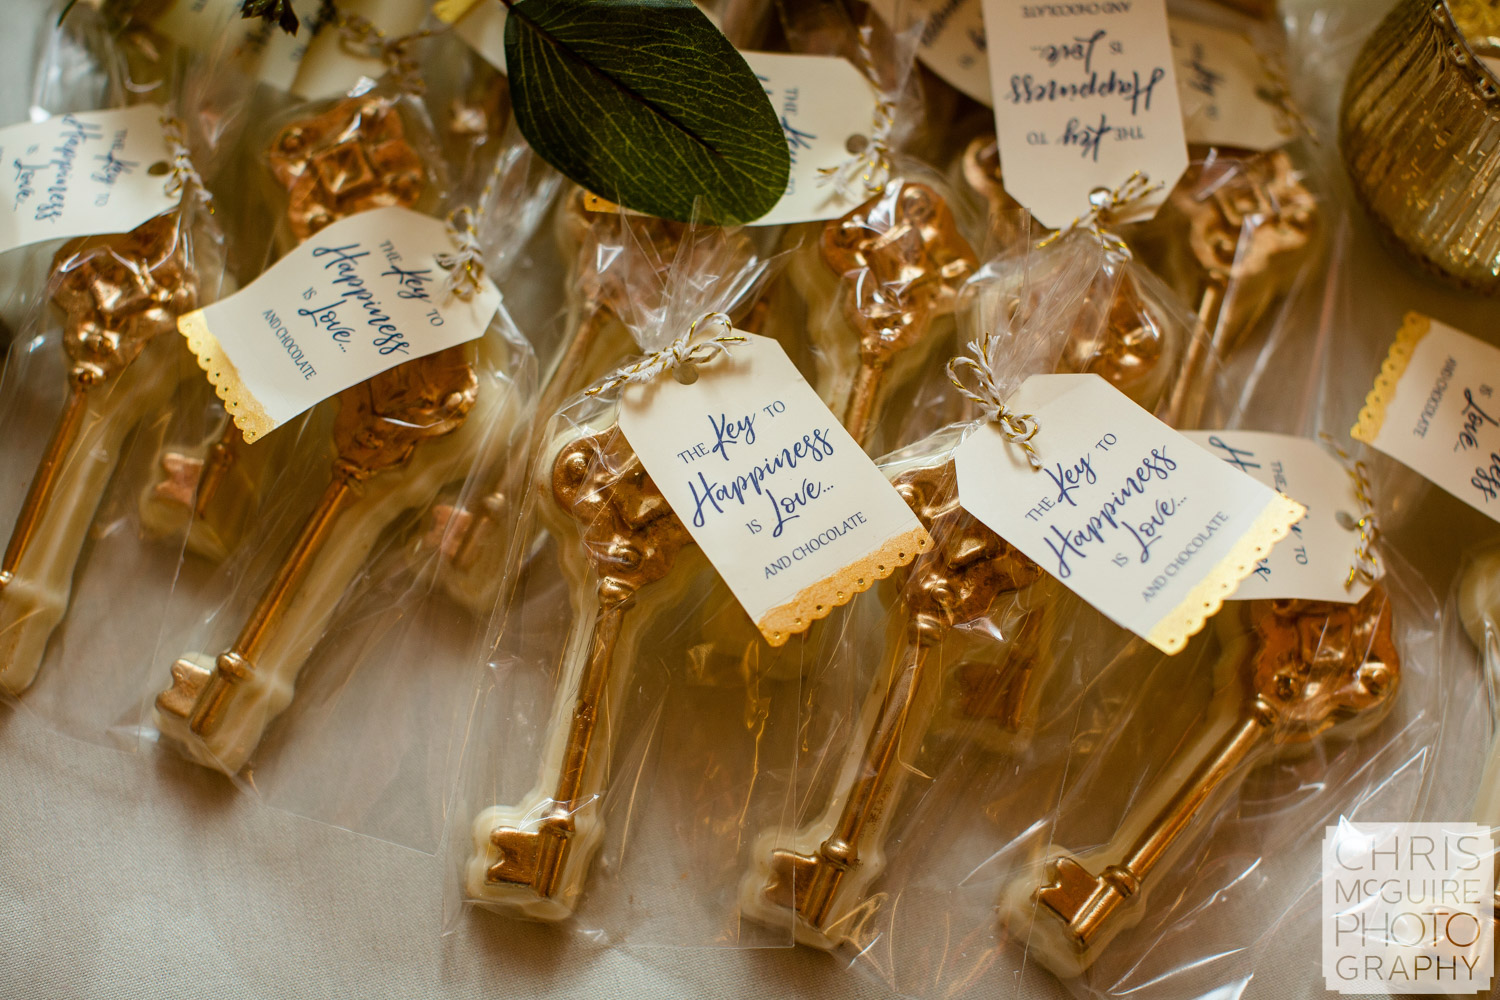 Wedding Favors Key to Happiness